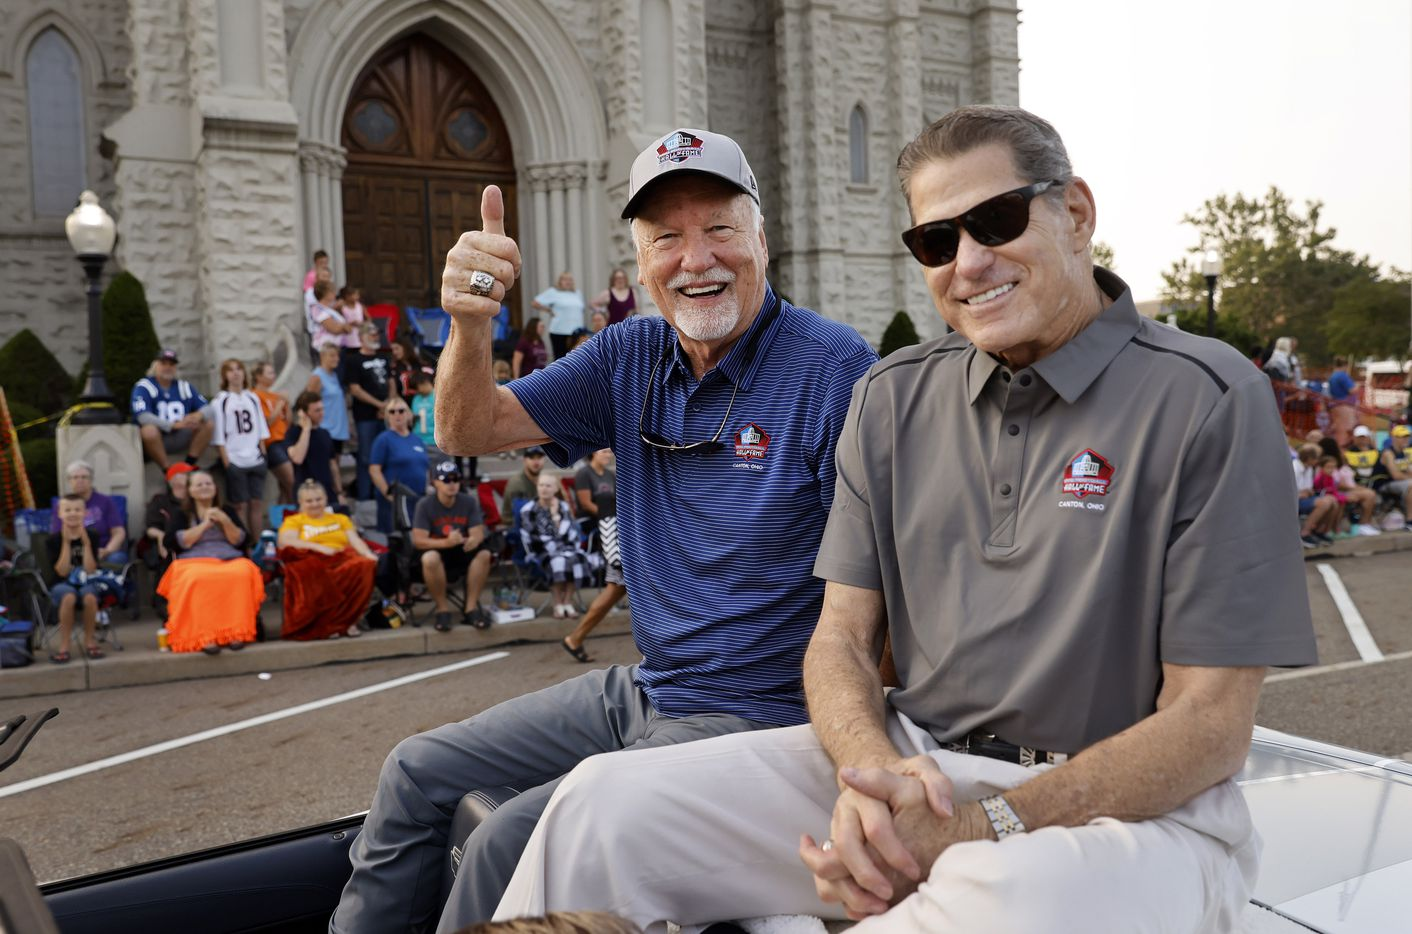 Dallas Cowboys Pro Football Hall of Fame inductee Cliff Harris (left) and former Cowboys safety Charlie Waters pose for a photo along the Canton Repository Grand Parade route in downtown Canton, Ohio, Saturday, August 7, 2021. The parade honored newly elected and former members of the Hall, including newcomers and former Dallas Cowboys players Cliff Harris, Drew Pearson and head coach Jimmy Johnson. (Tom Fox/The Dallas Morning News)